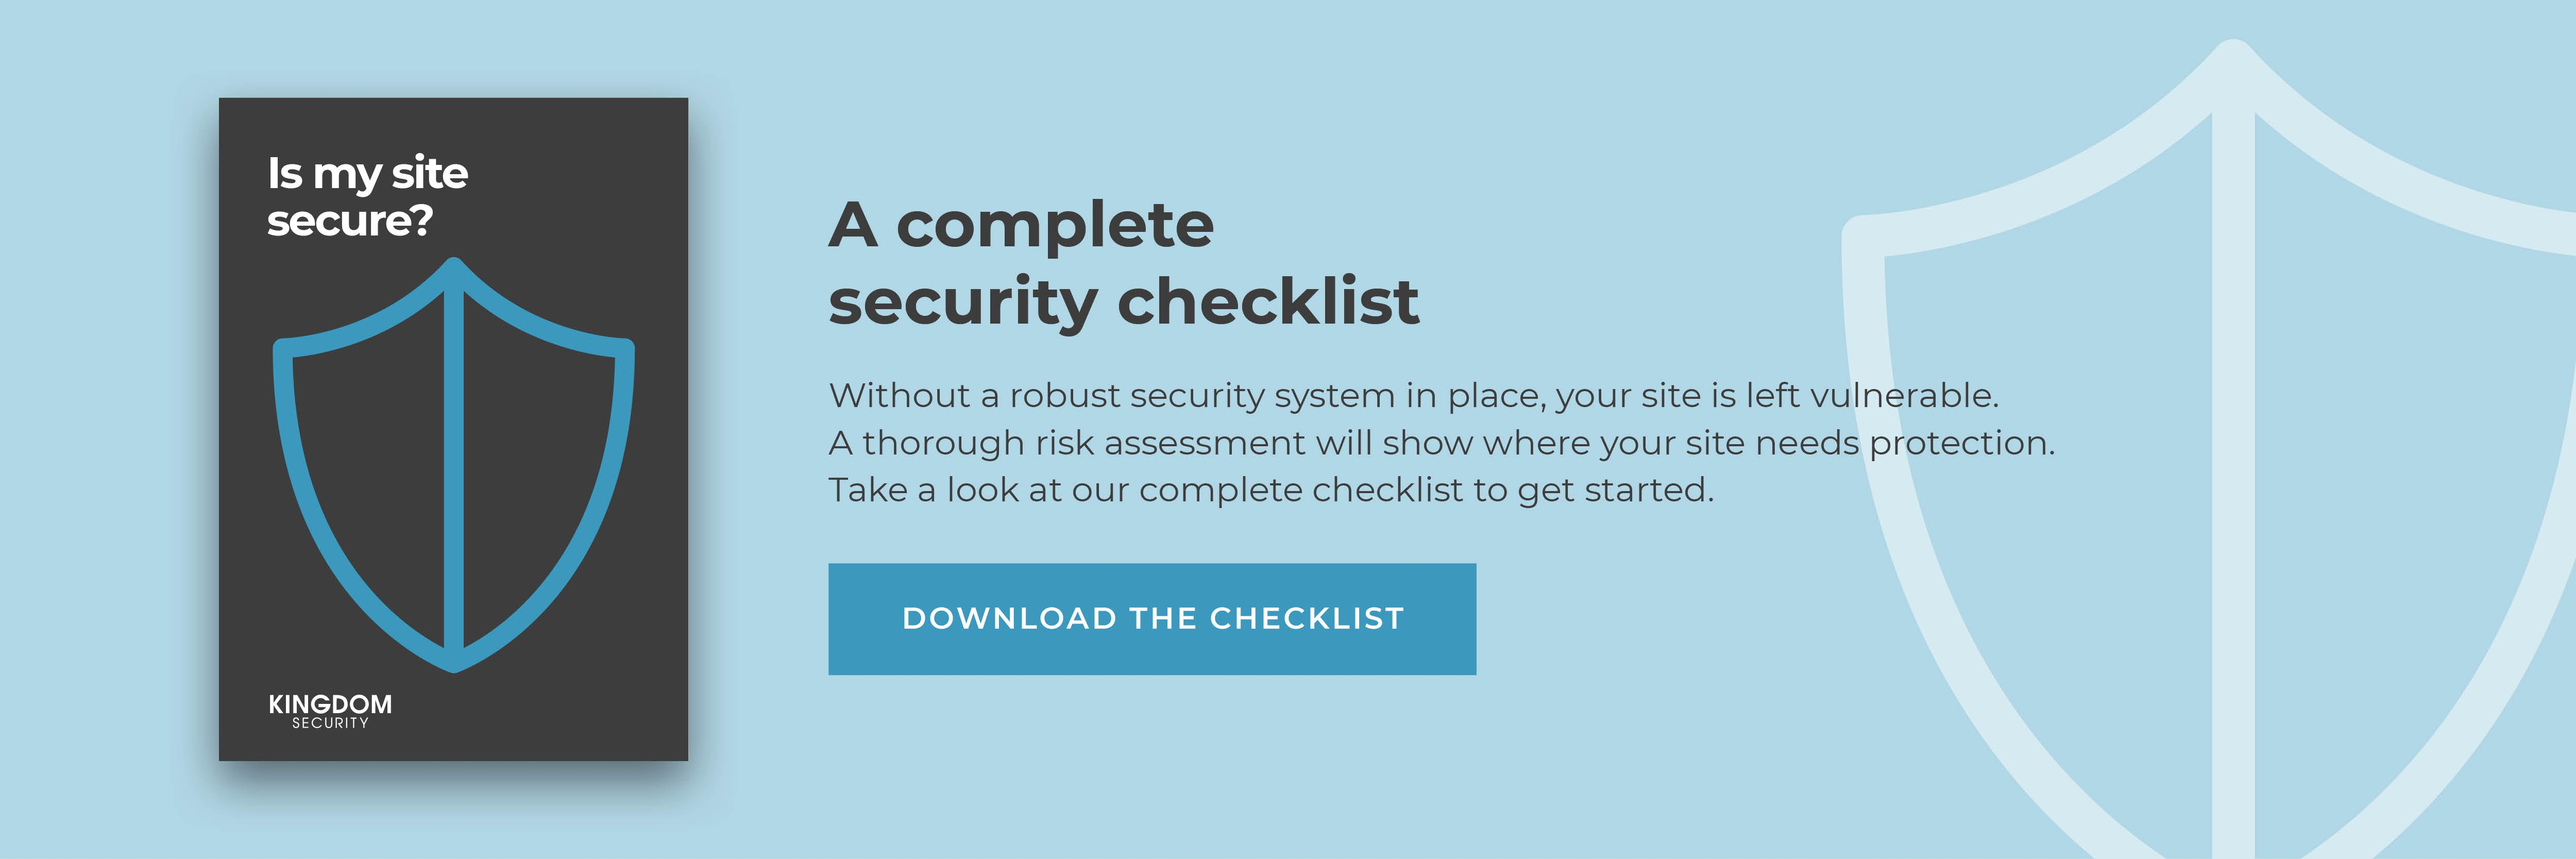 A complete security checklist